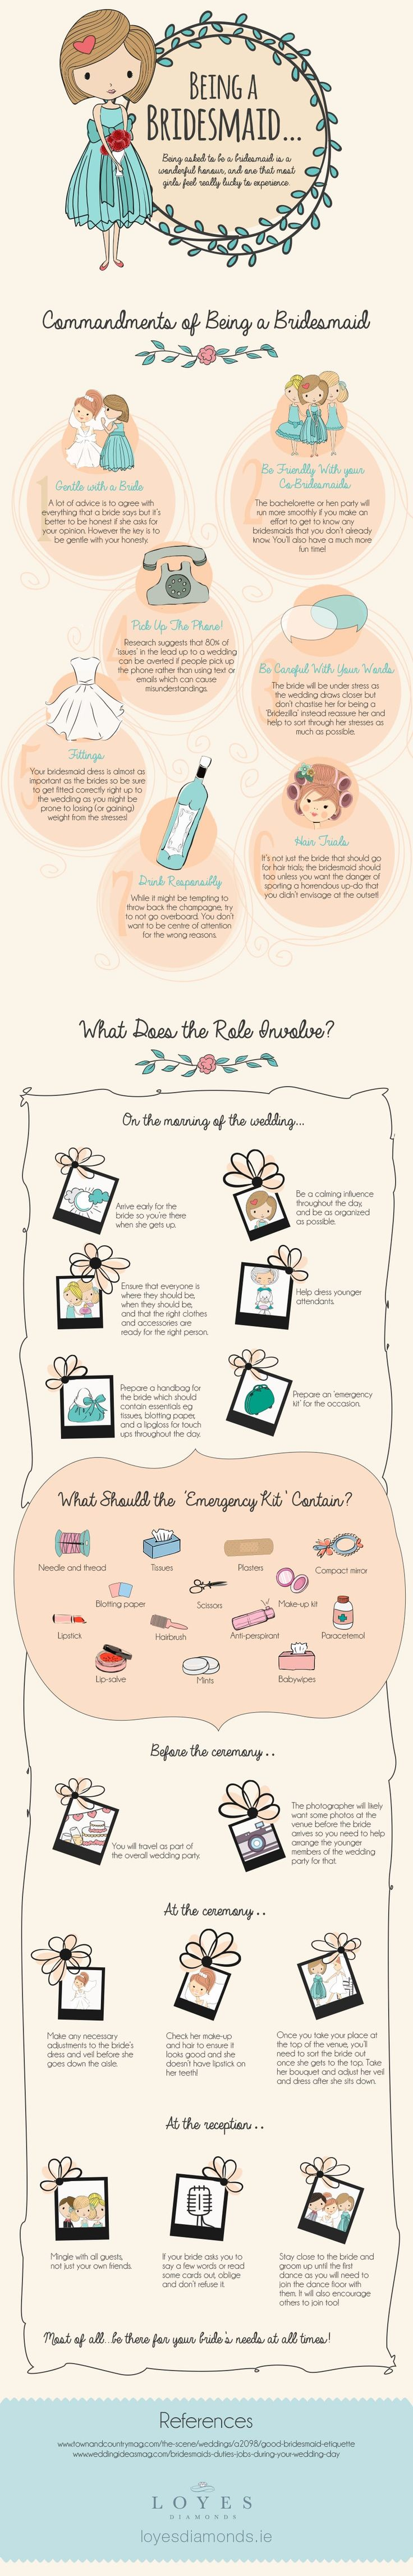 A Guide To Being A Good Bridesmaid - Infographic